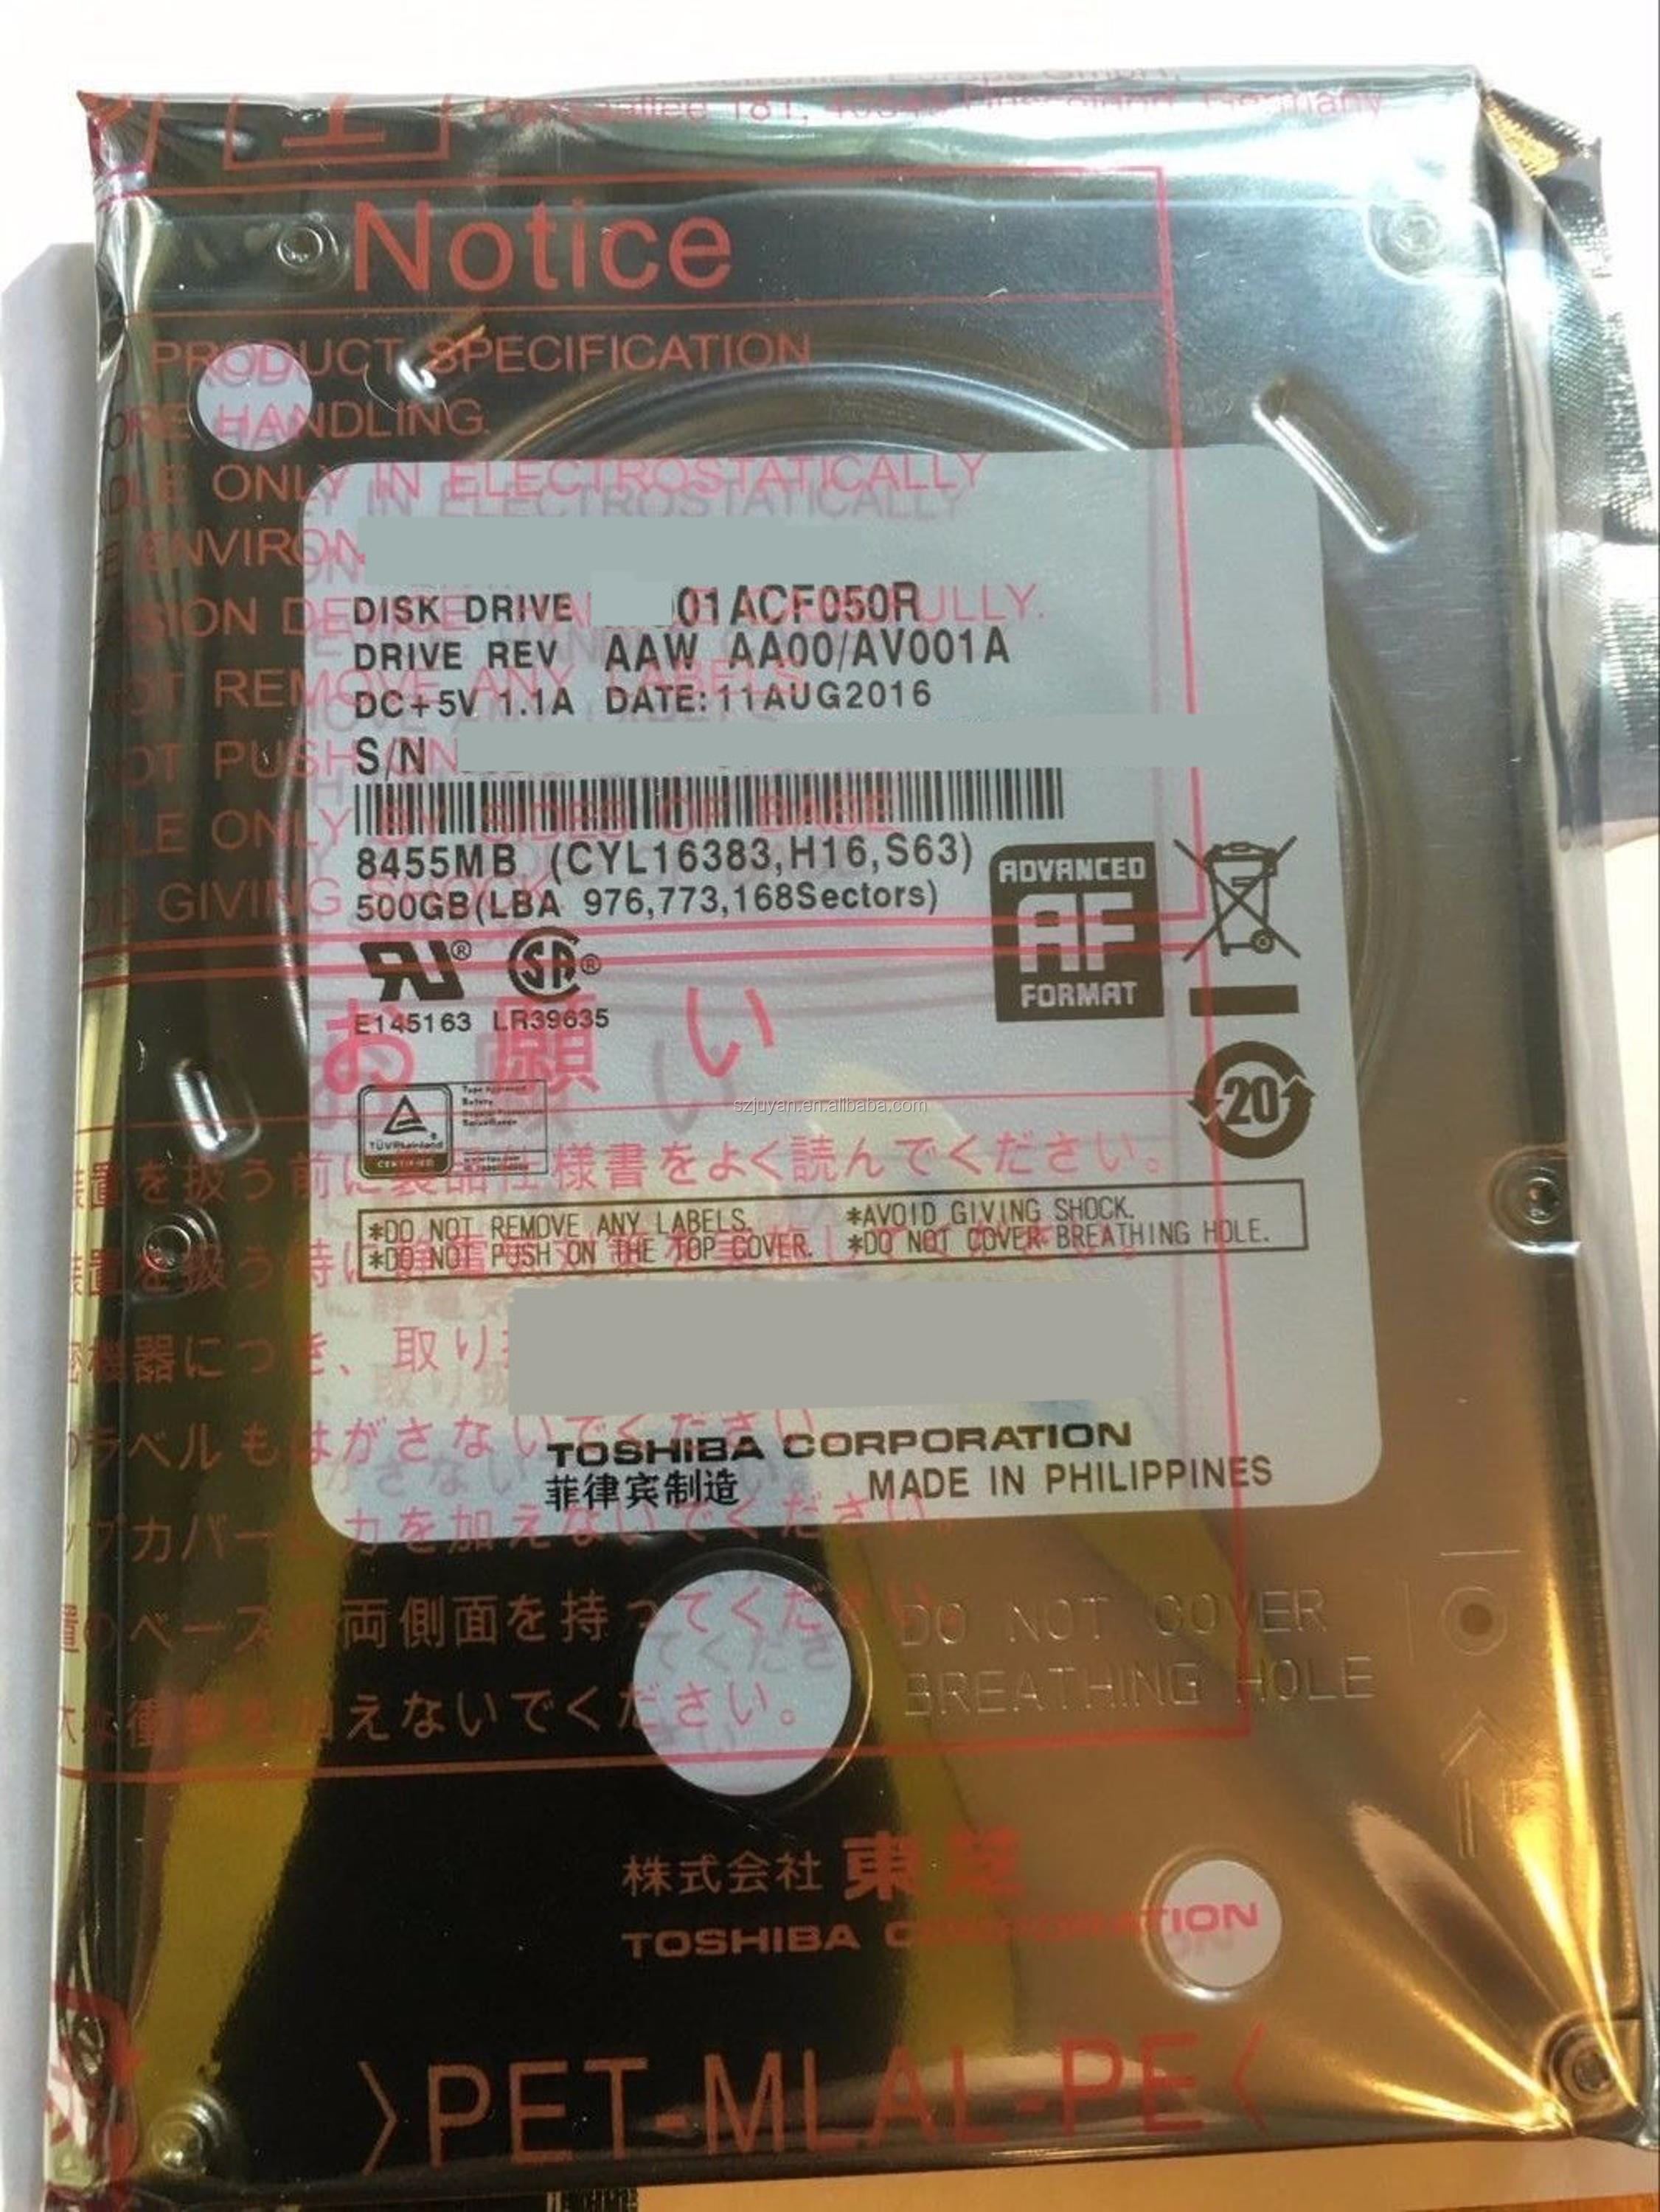 HDD stytle SATA internal 2.5'' 7200rpm high speed laptop hard drive 500gb